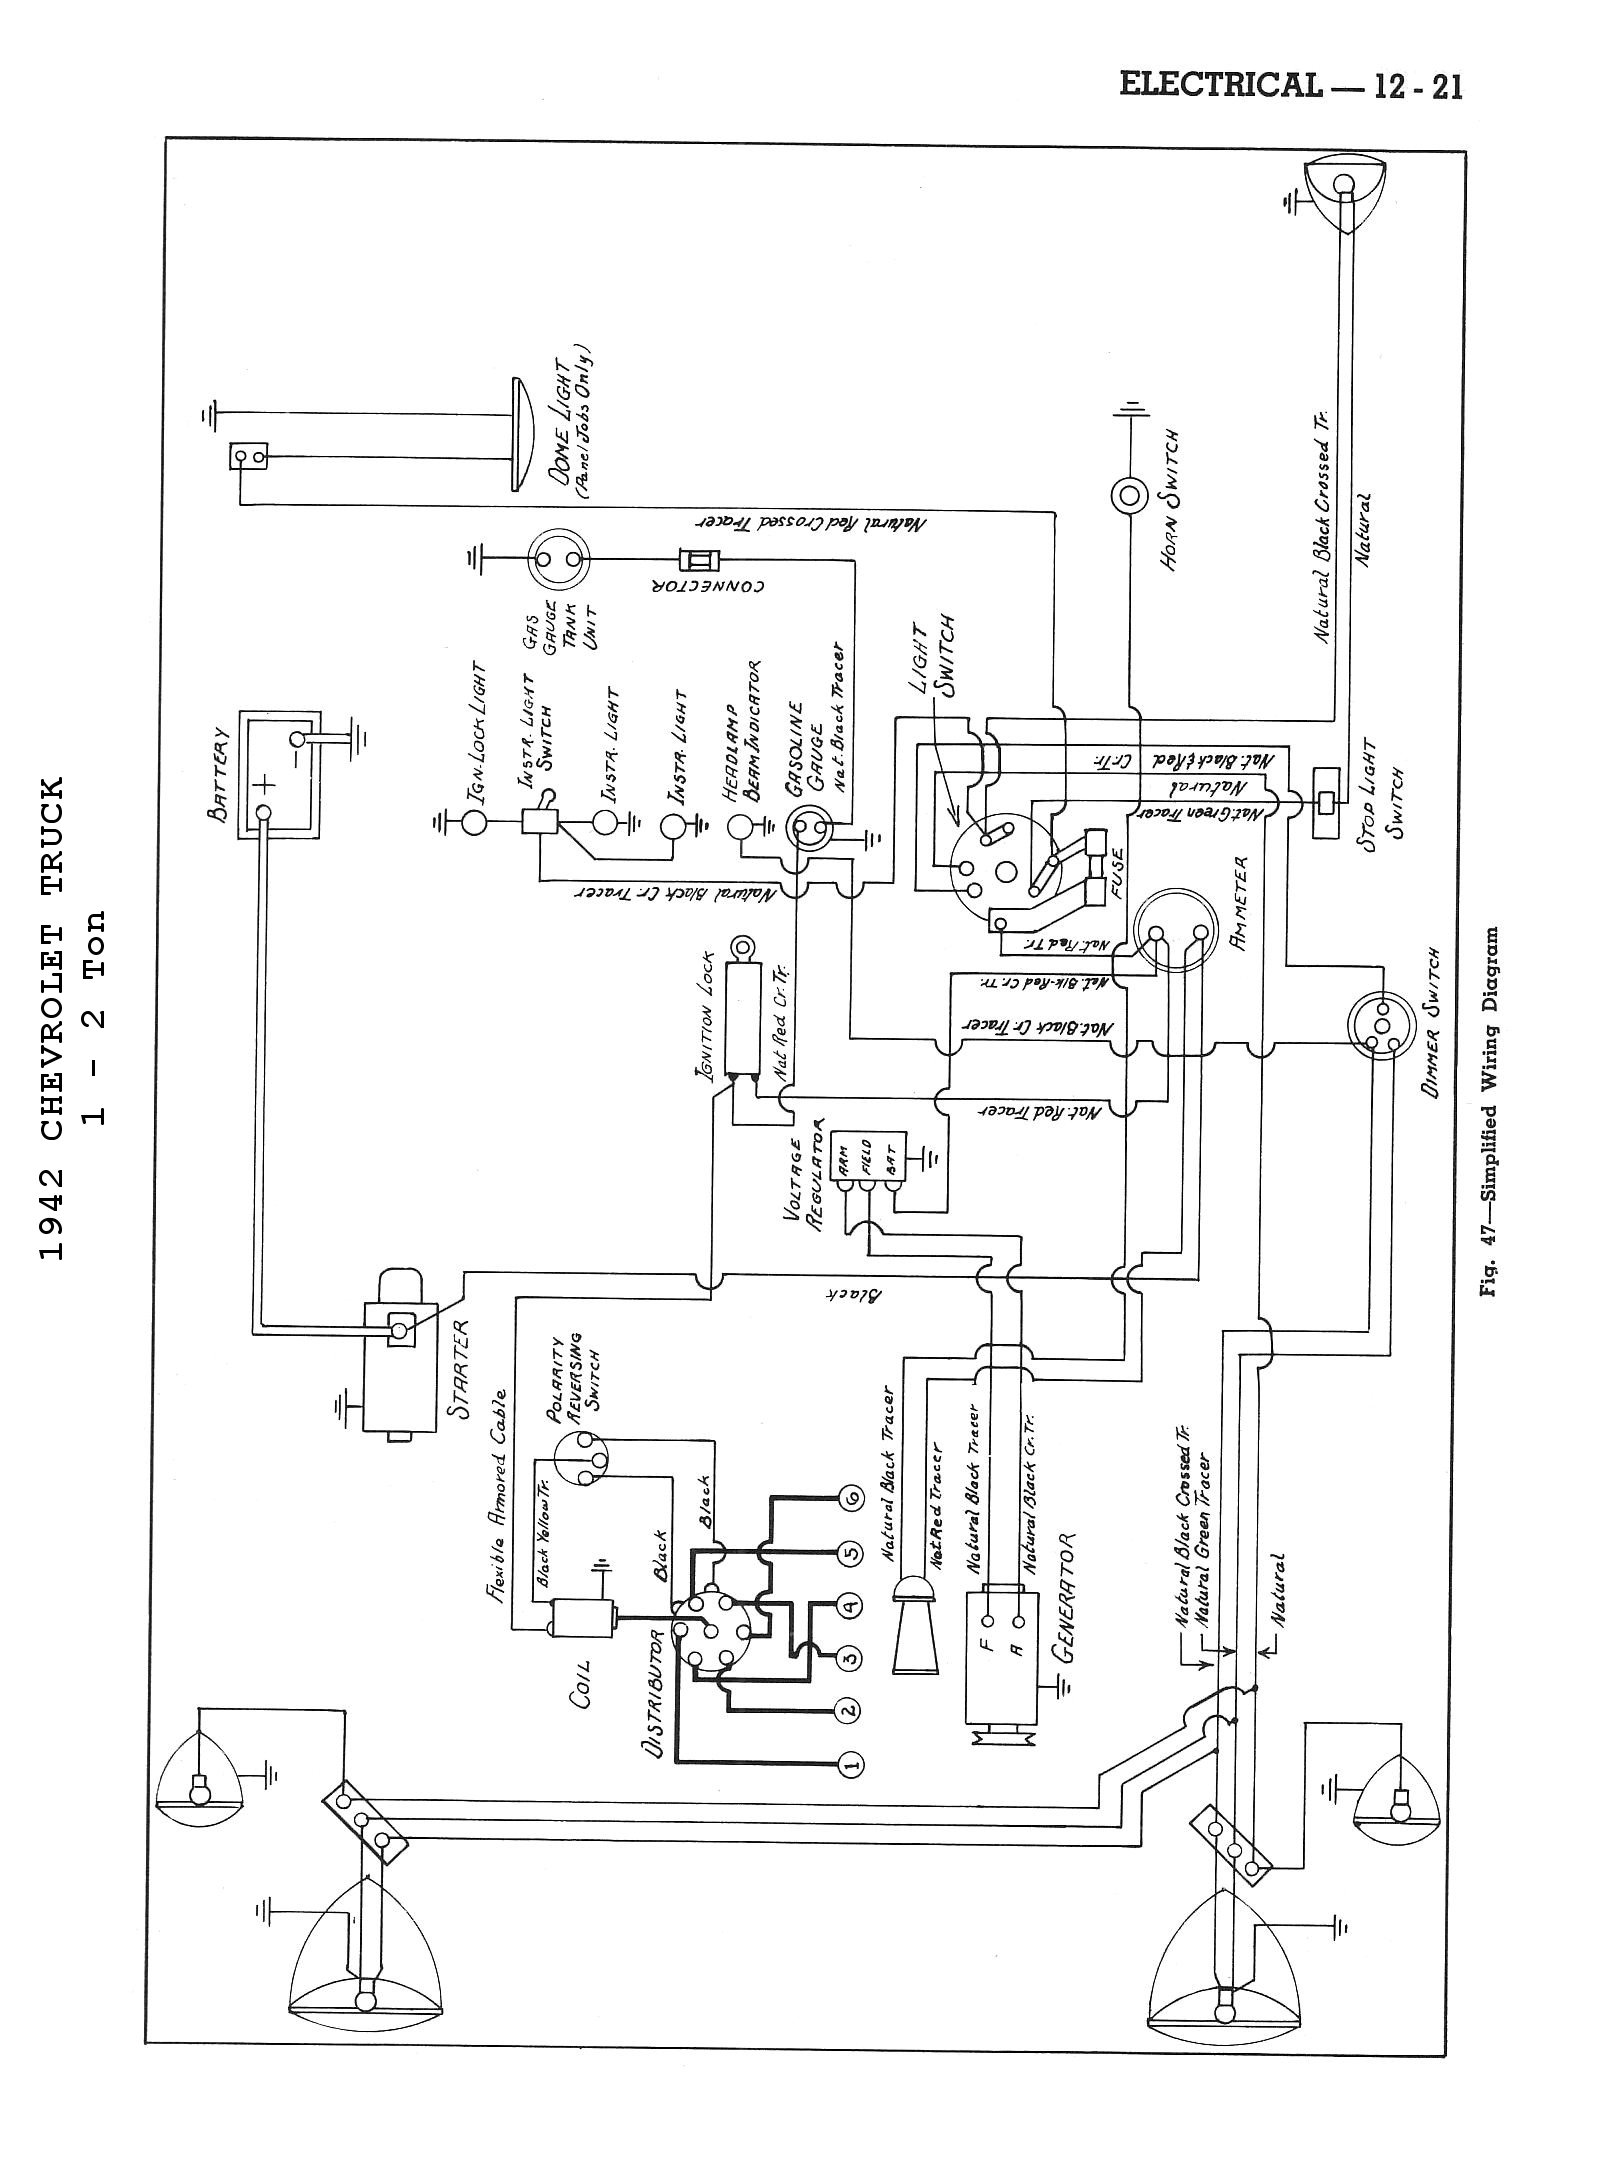 chevy wiring diagrams rh chevy oldcarmanualproject com 1937 Chevrolet Wiring Diagram 1947 Chevy Truck Wiring Diagram